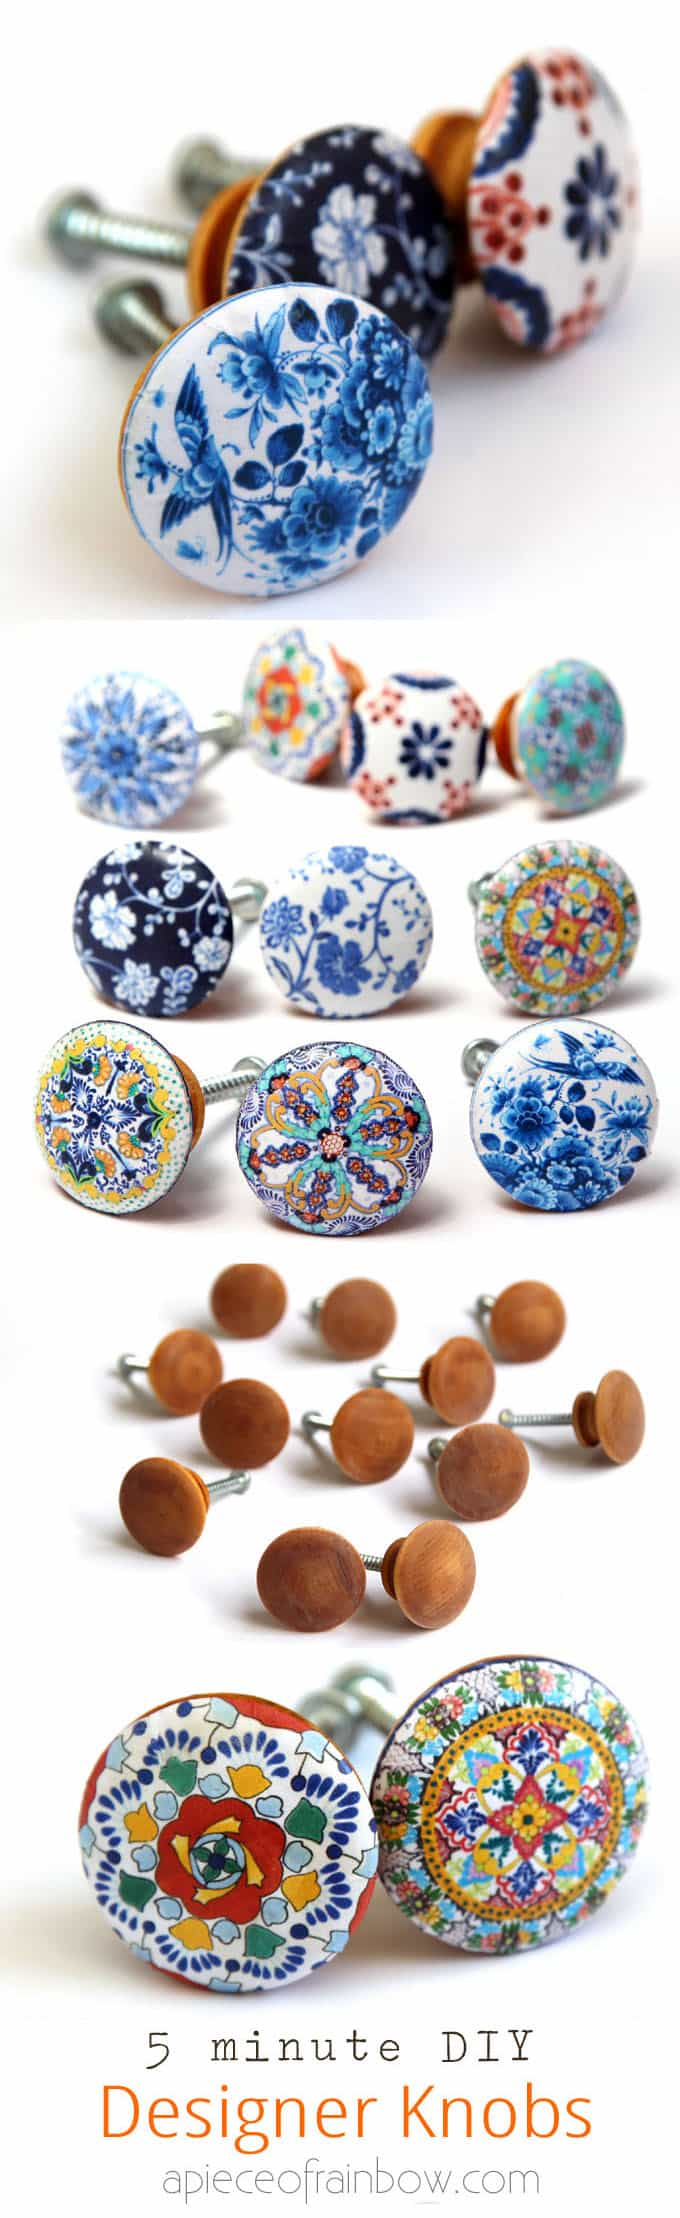 Anthropologie Worthy DIY Cabinet Or Door Knobs That Look Like Hand Painted  Designer Ceramic Knobs!